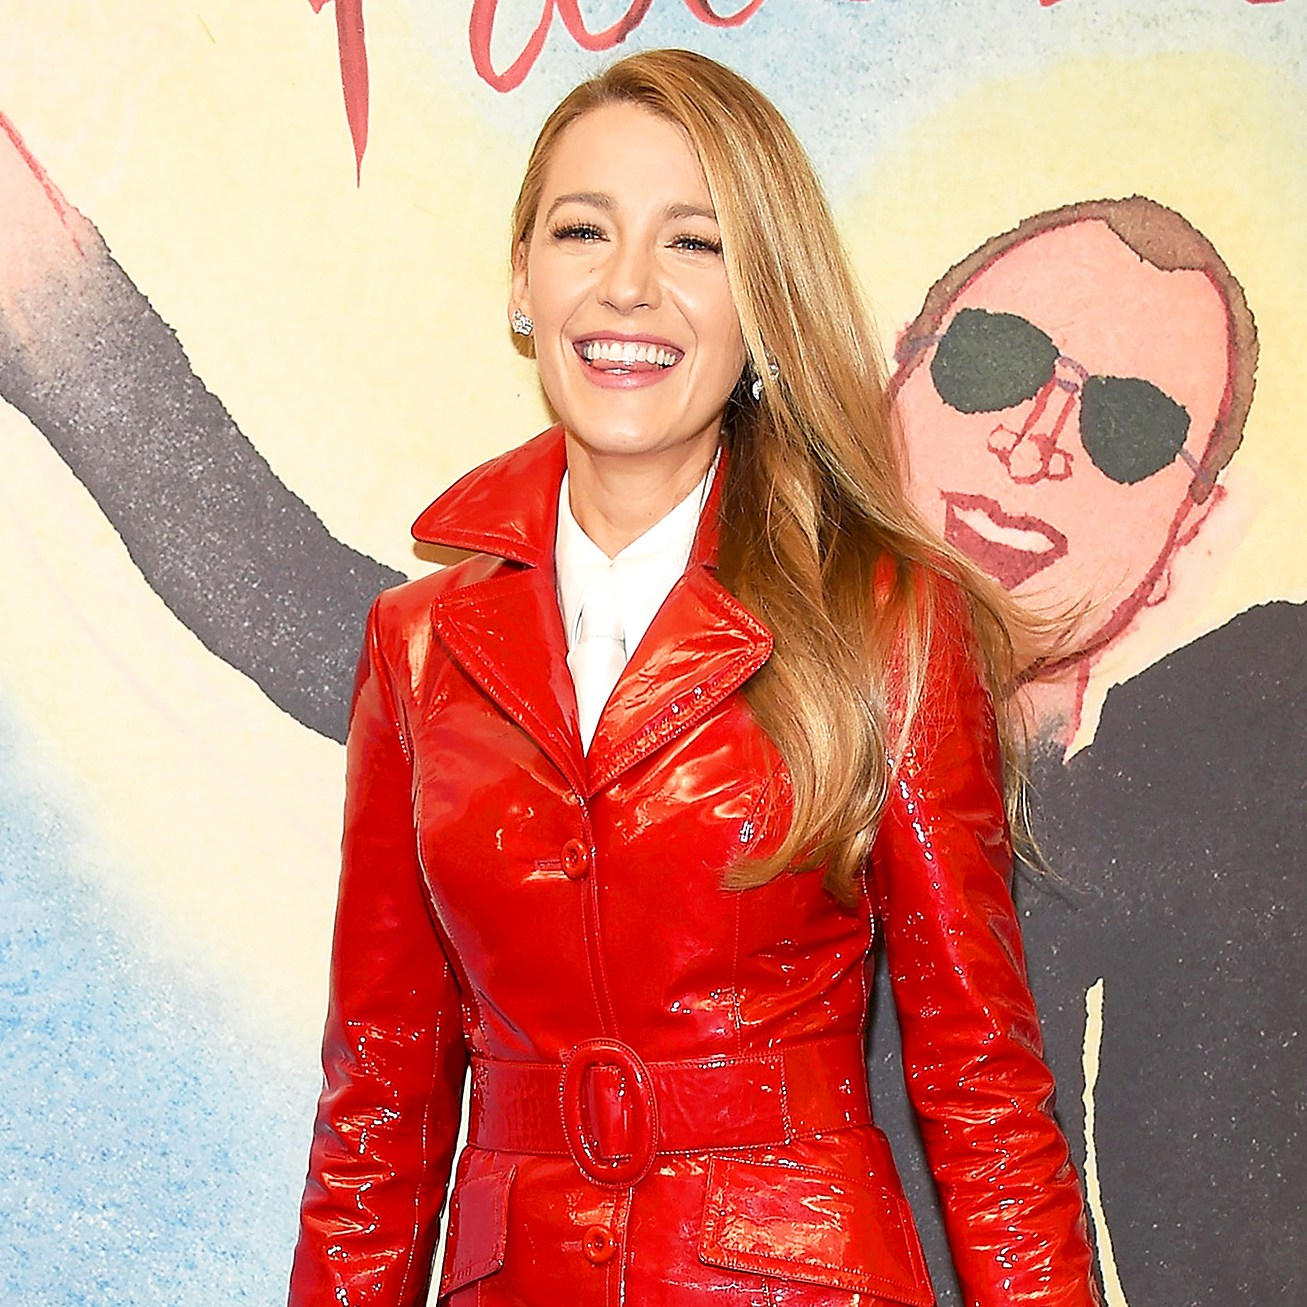 Blake Lively attends the Michael Kors fashion show during 2018 New York Fashion Week at Vivian Beaumont Theatre in New York City.